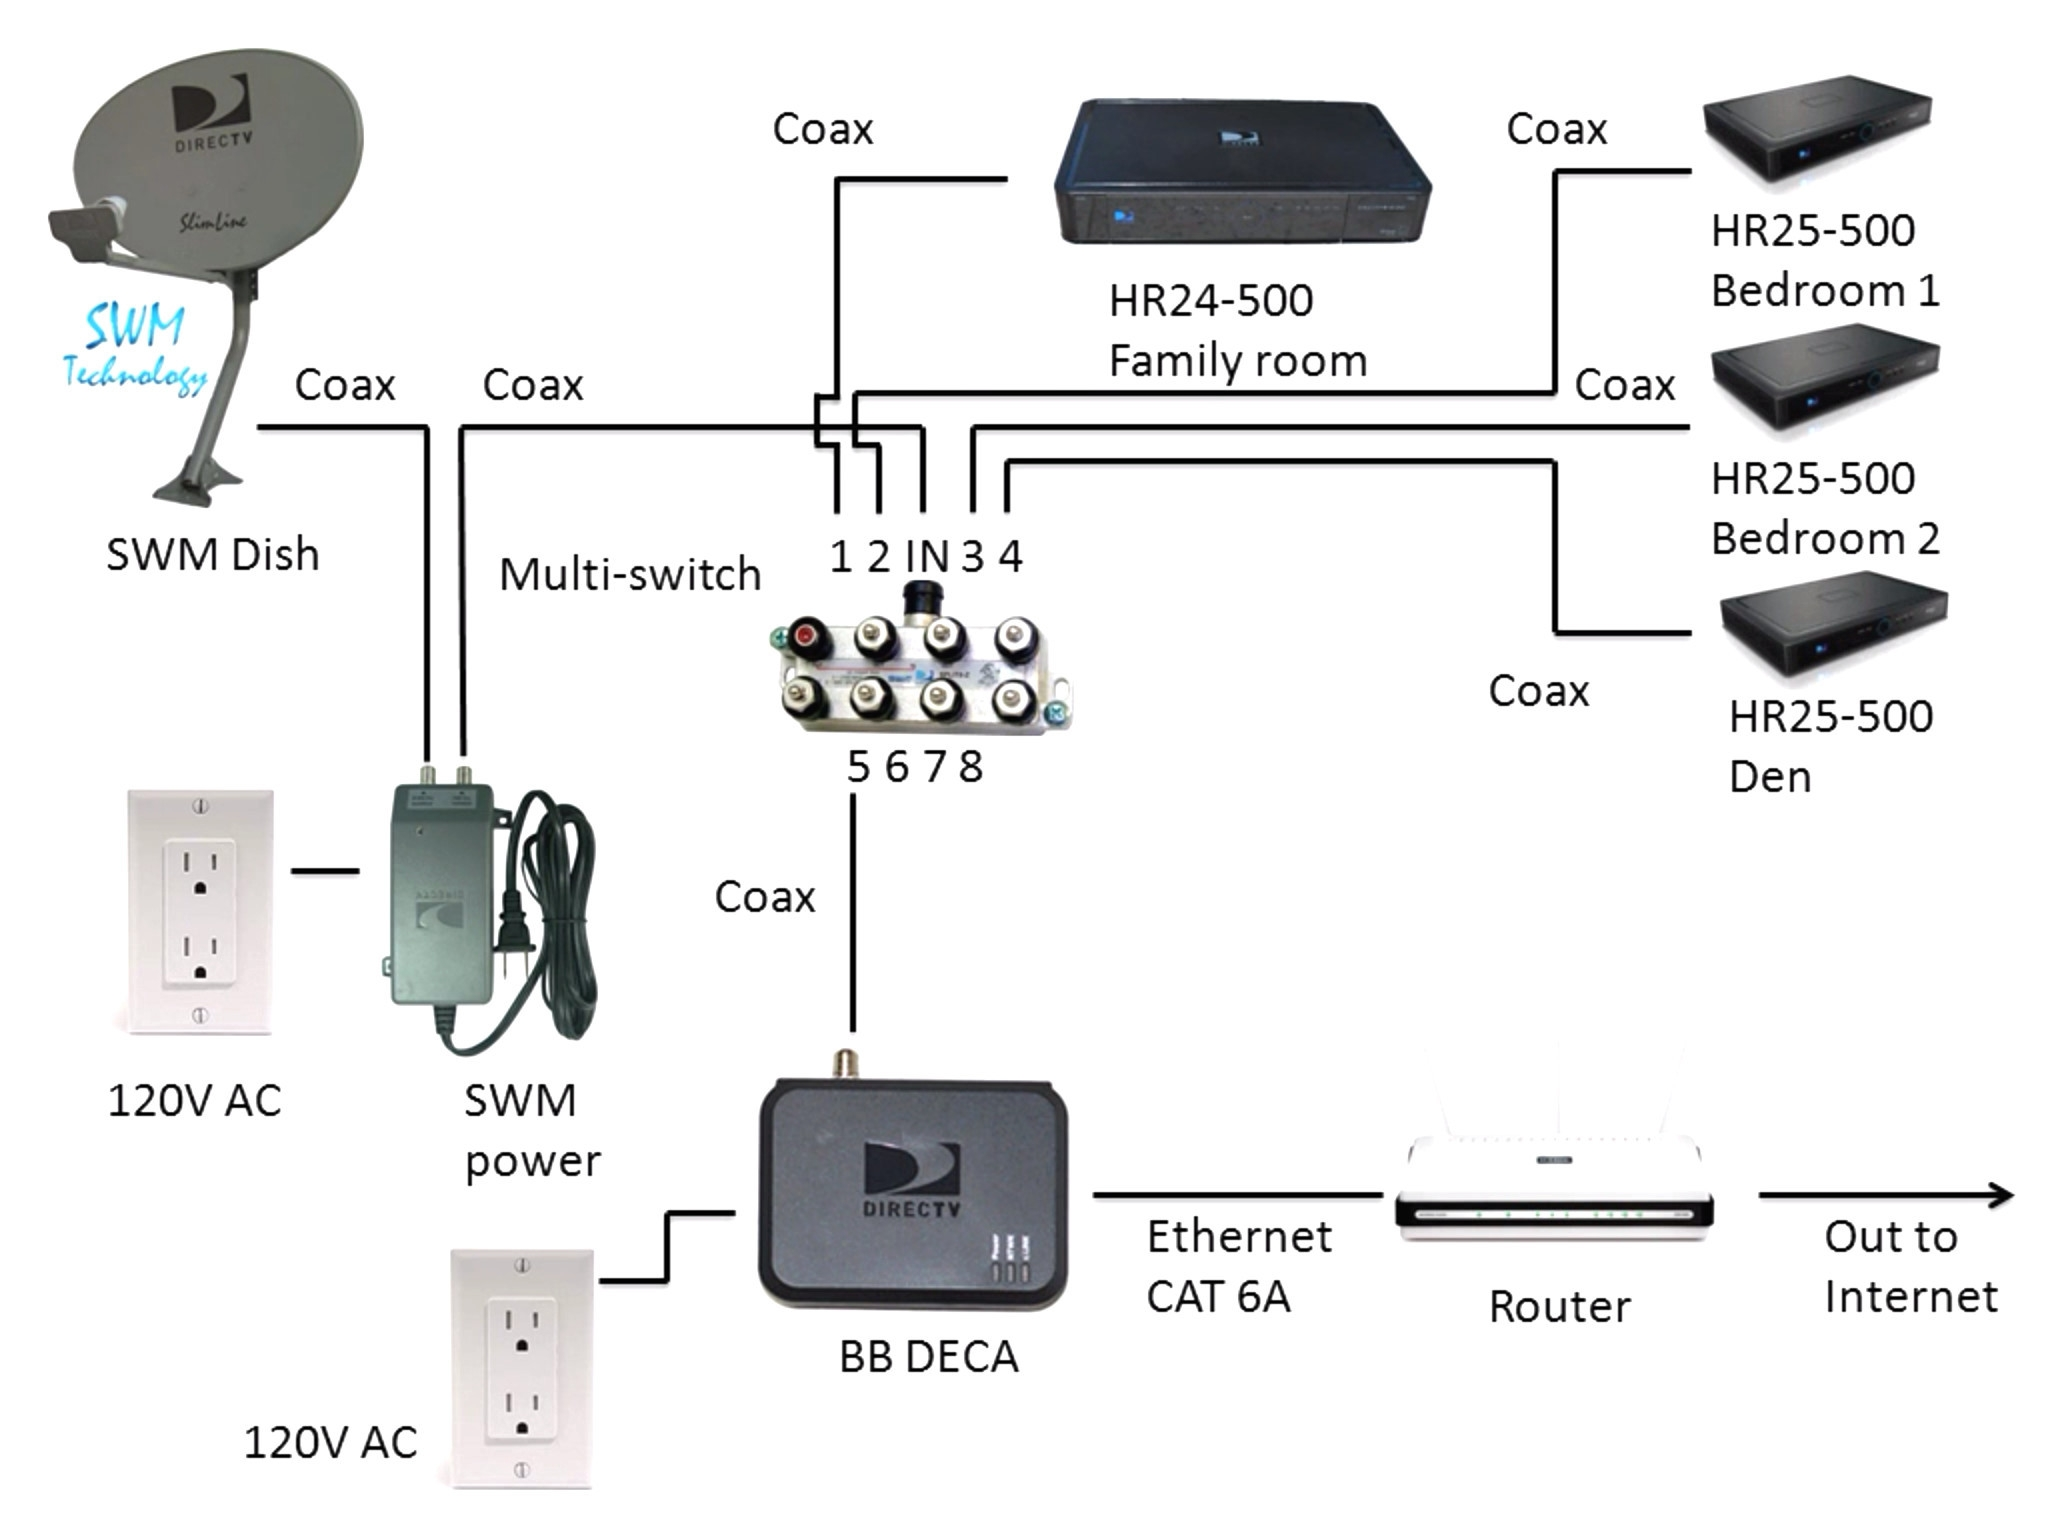 directv swm 32 wiring diagram Download-Directv Wiring Diagram Reference Wiring Diagram Direct Line New Directv Swm Wiring Diagrams And 11-d